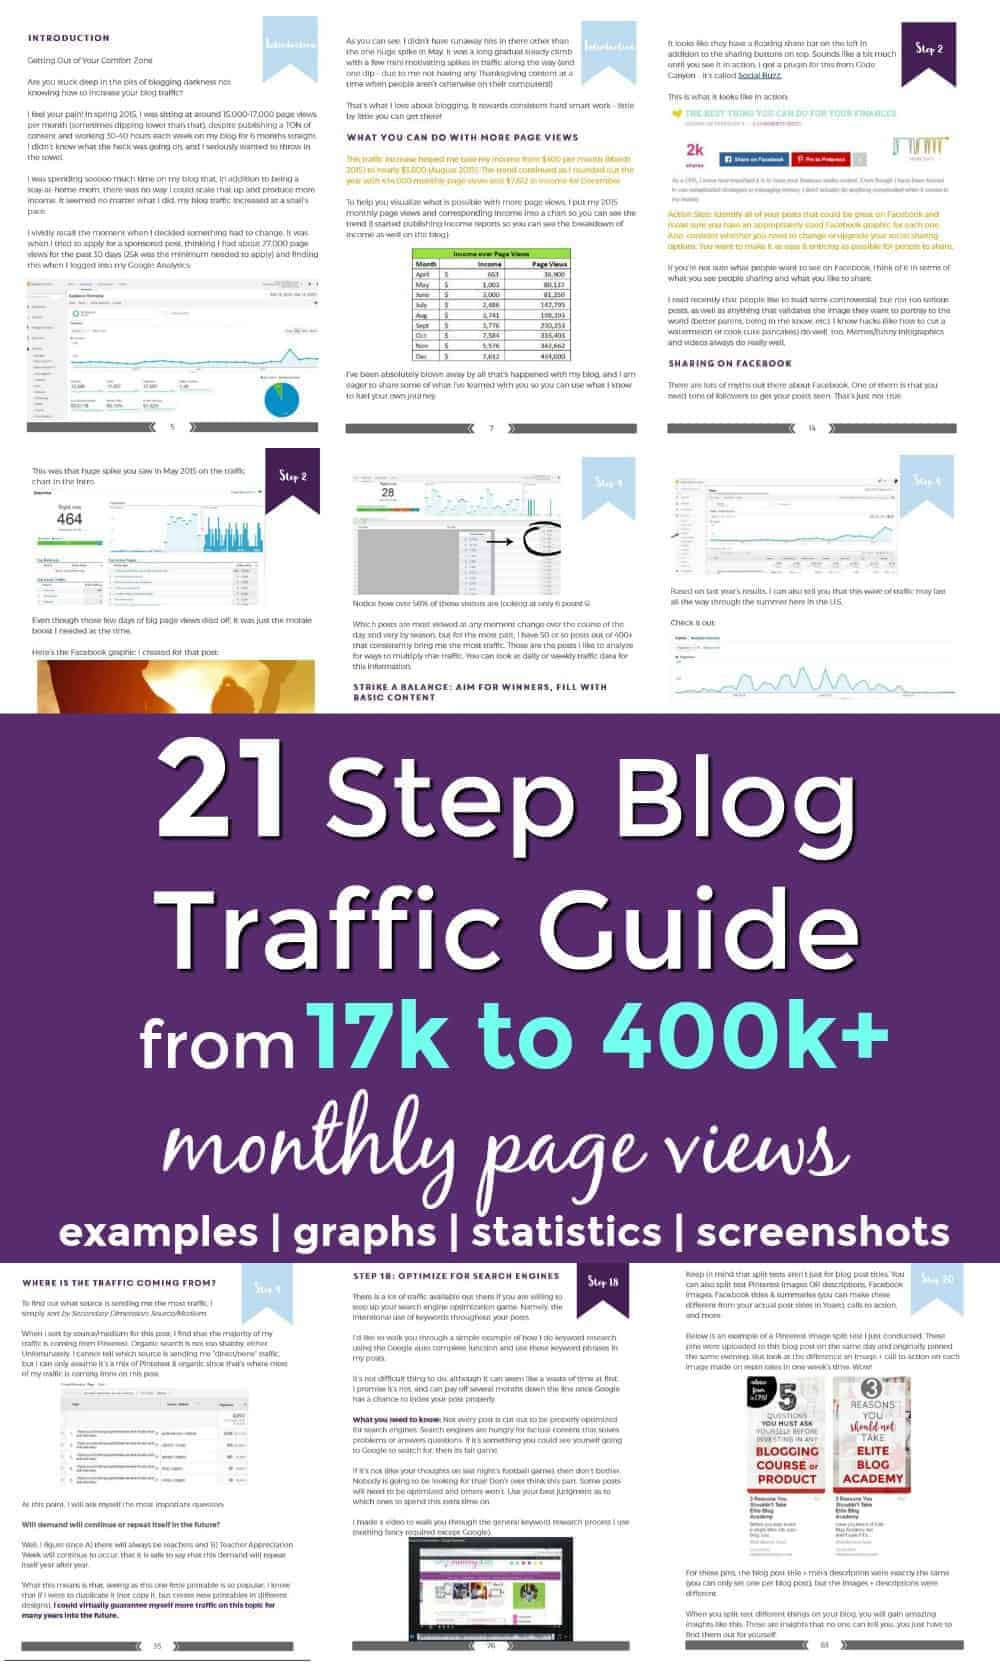 how to drive traffic to a blog without seo